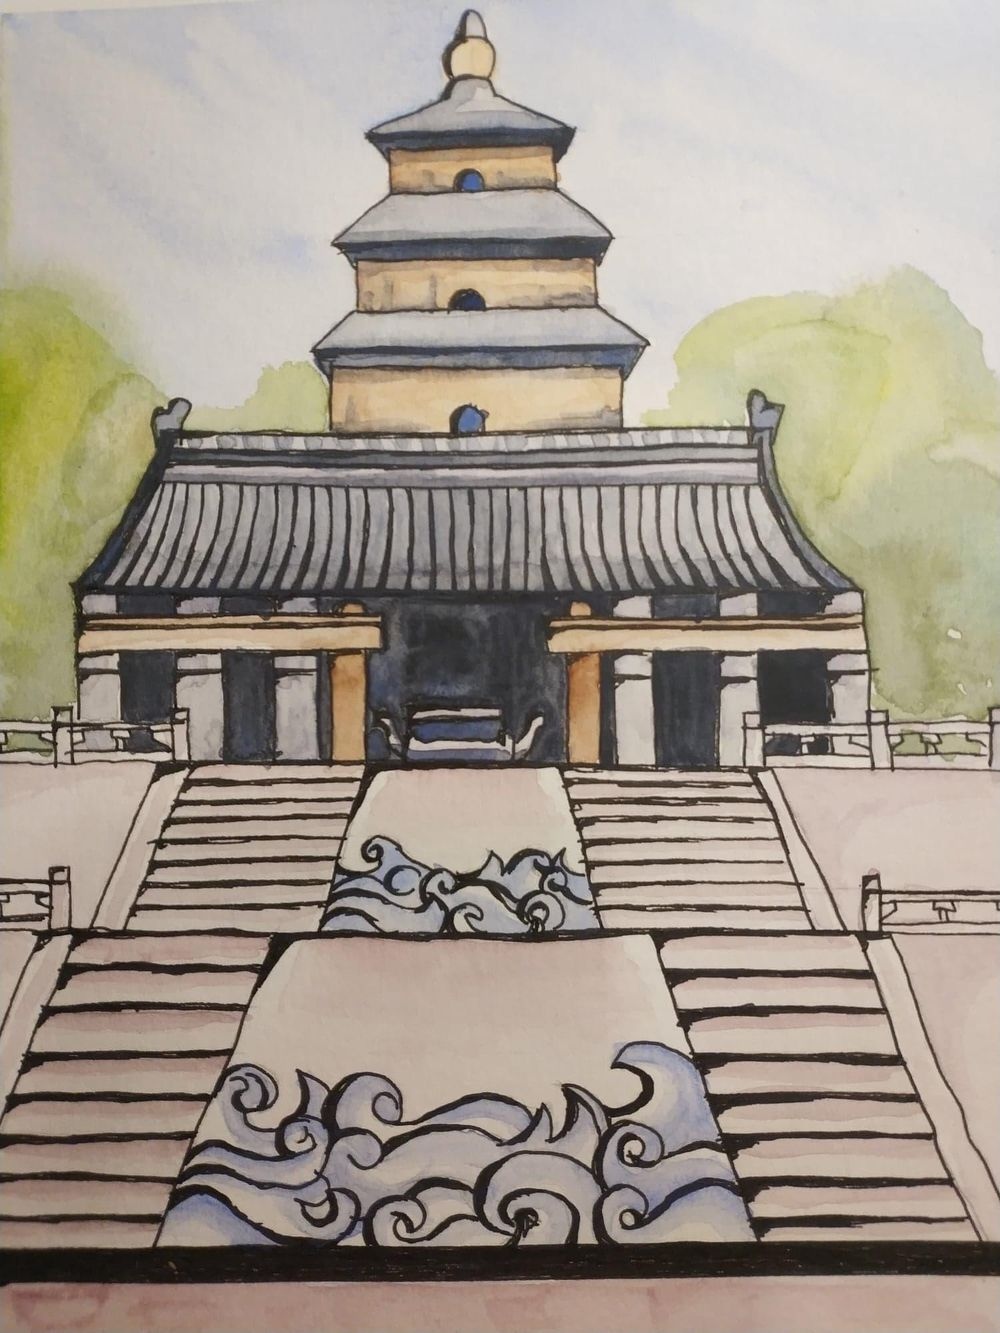 Wild Goose Pagoda - image 1 - student project